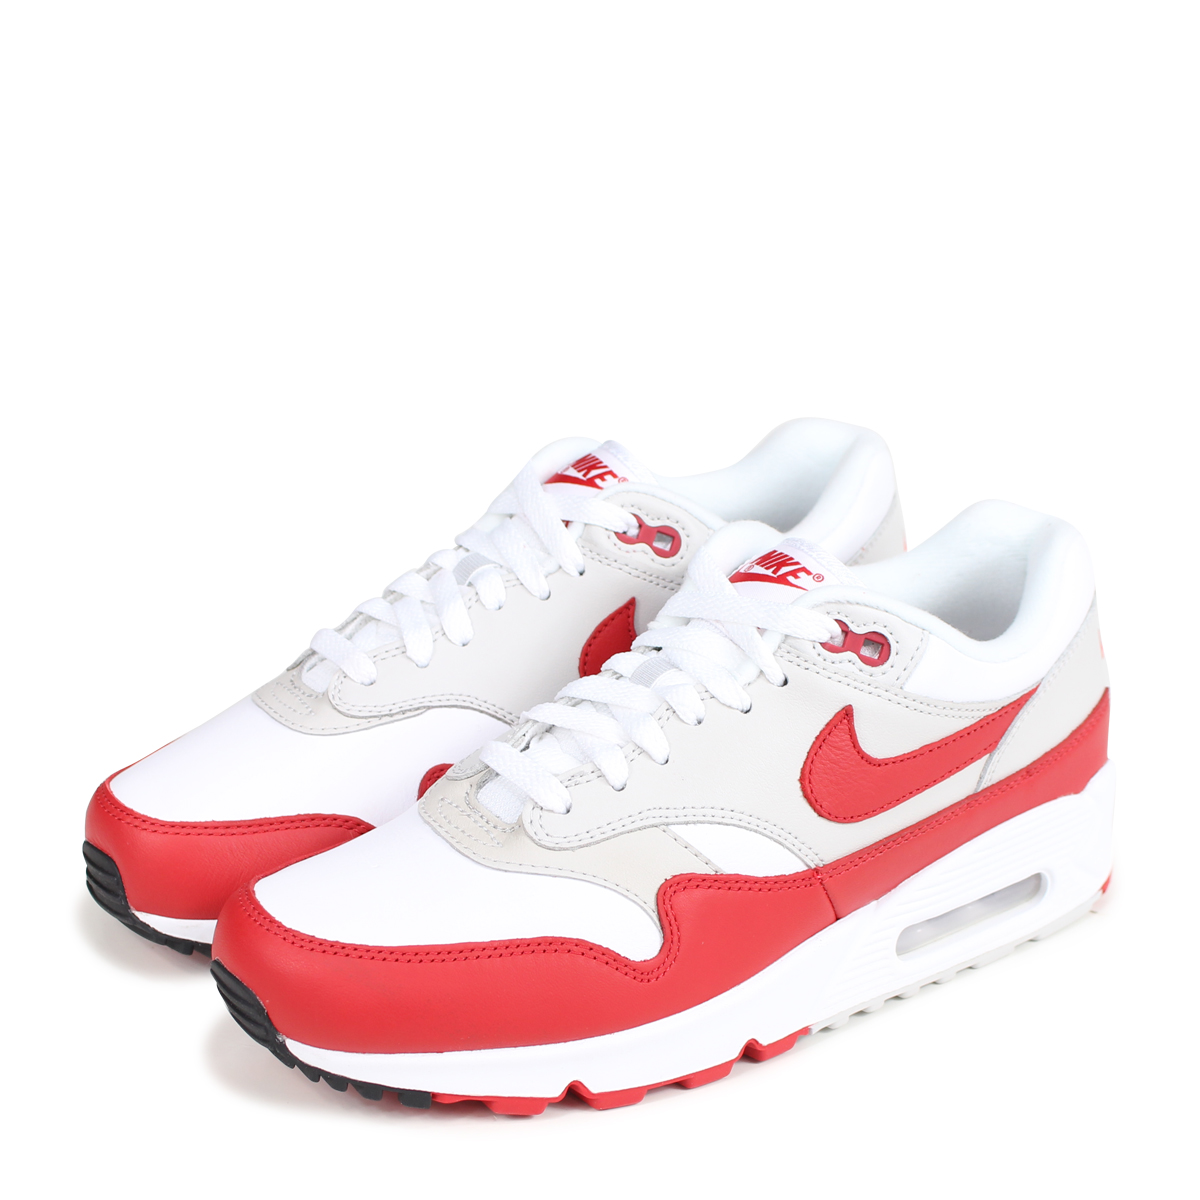 new concept 3afae 9d136 ALLSPORTS  NIKE WMNS AIR MAX 90 1 Kie Ney AMAX 90 1 lady s men s sneakers  575,441-401 white  load planned Shinnyu load in reservation product 8 18 ...